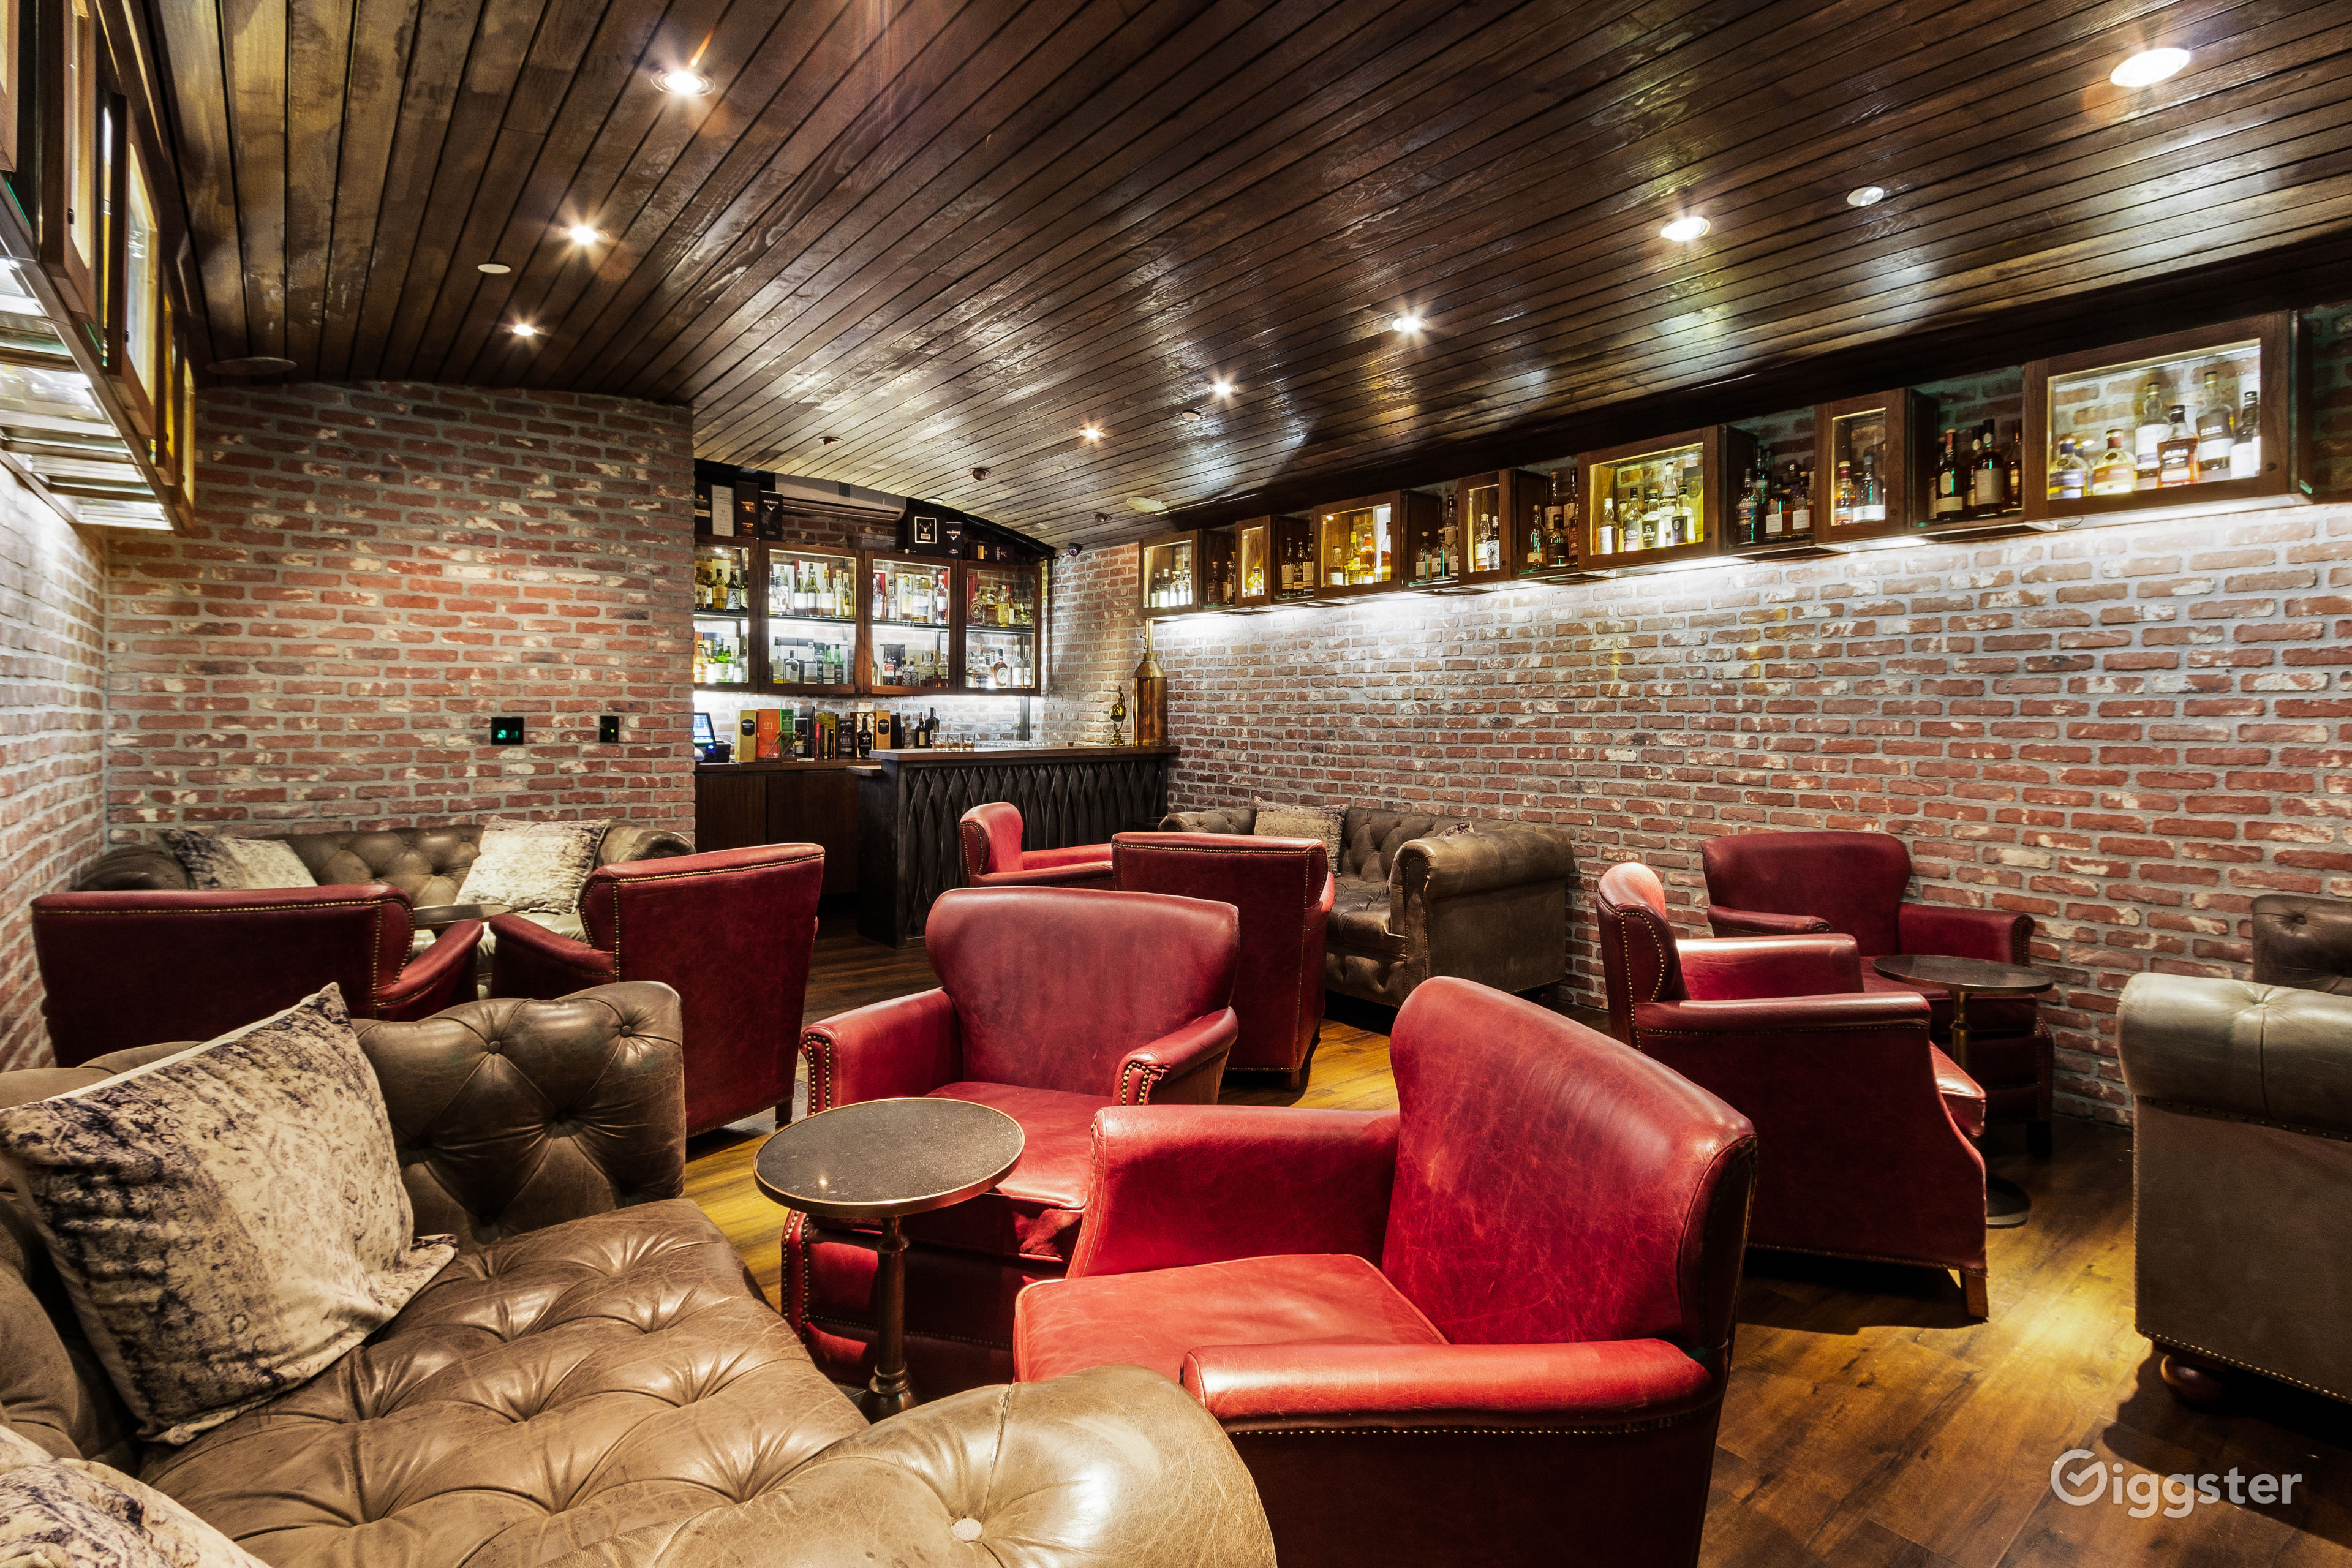 Underground Vip Whiskey Lounge In Downtown La Rent This Location On Giggster